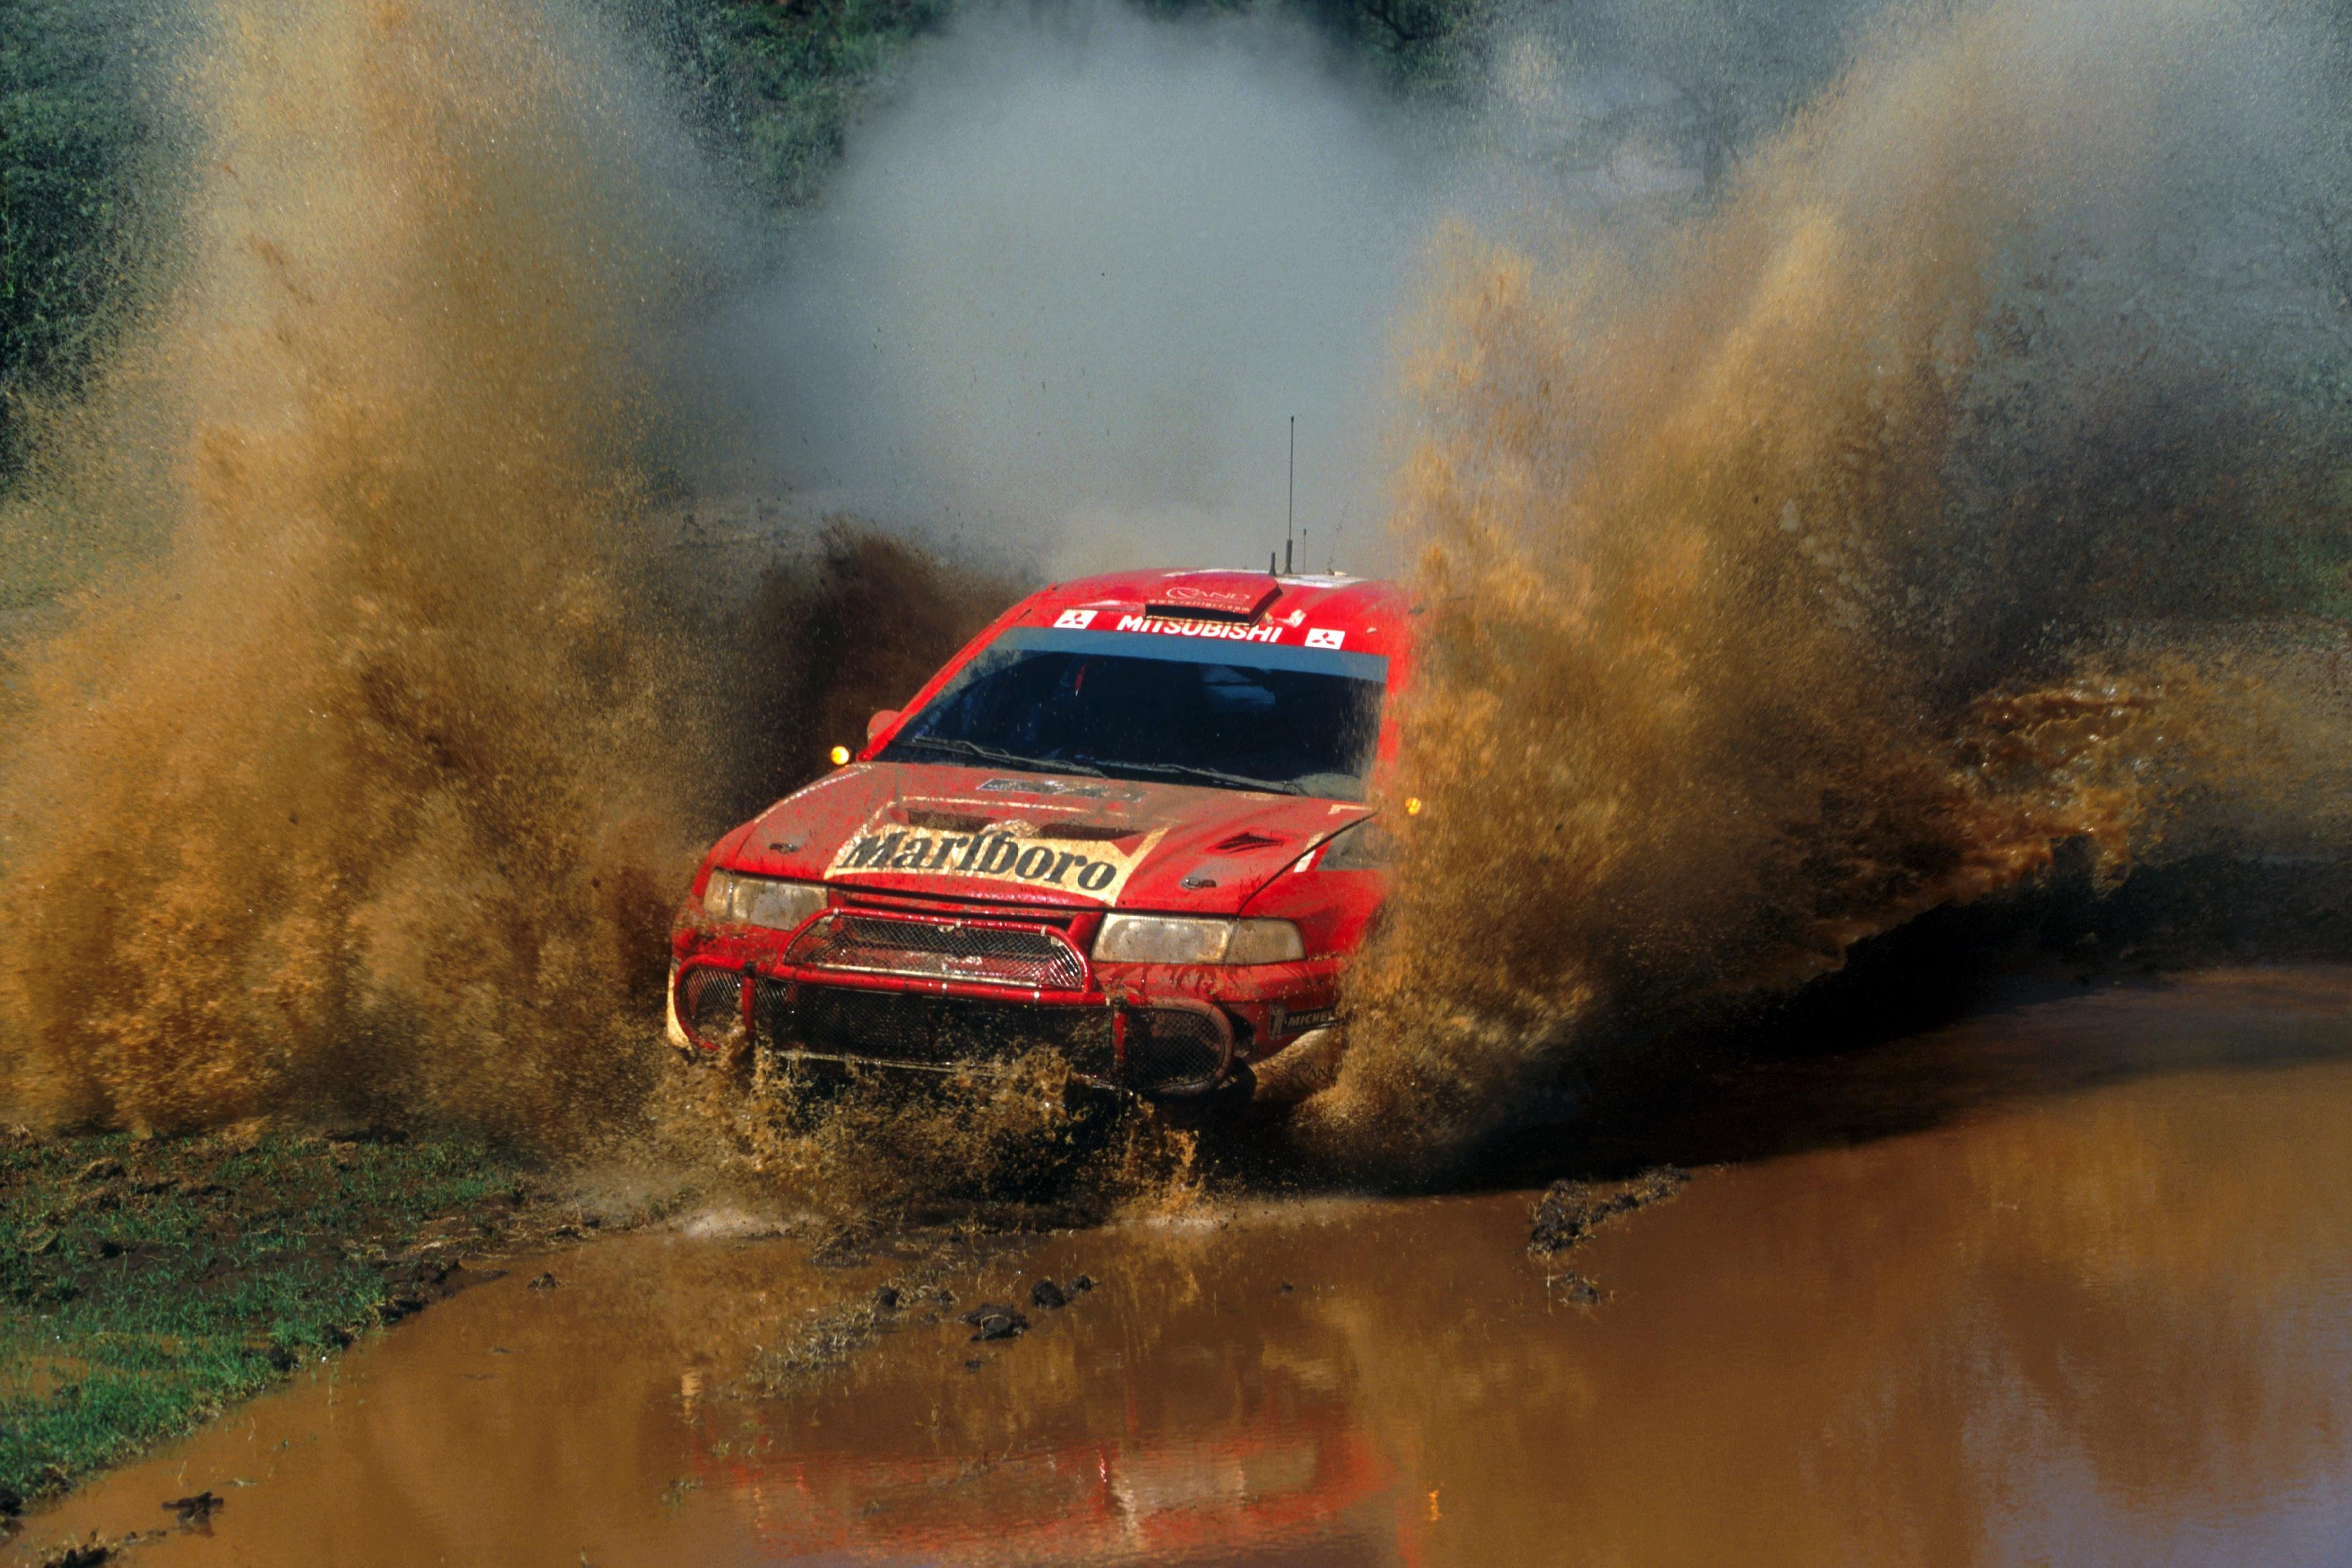 The final win for the Makinen and Mitsubishi axis came on the 2001 Safari before his title campaign collapsed